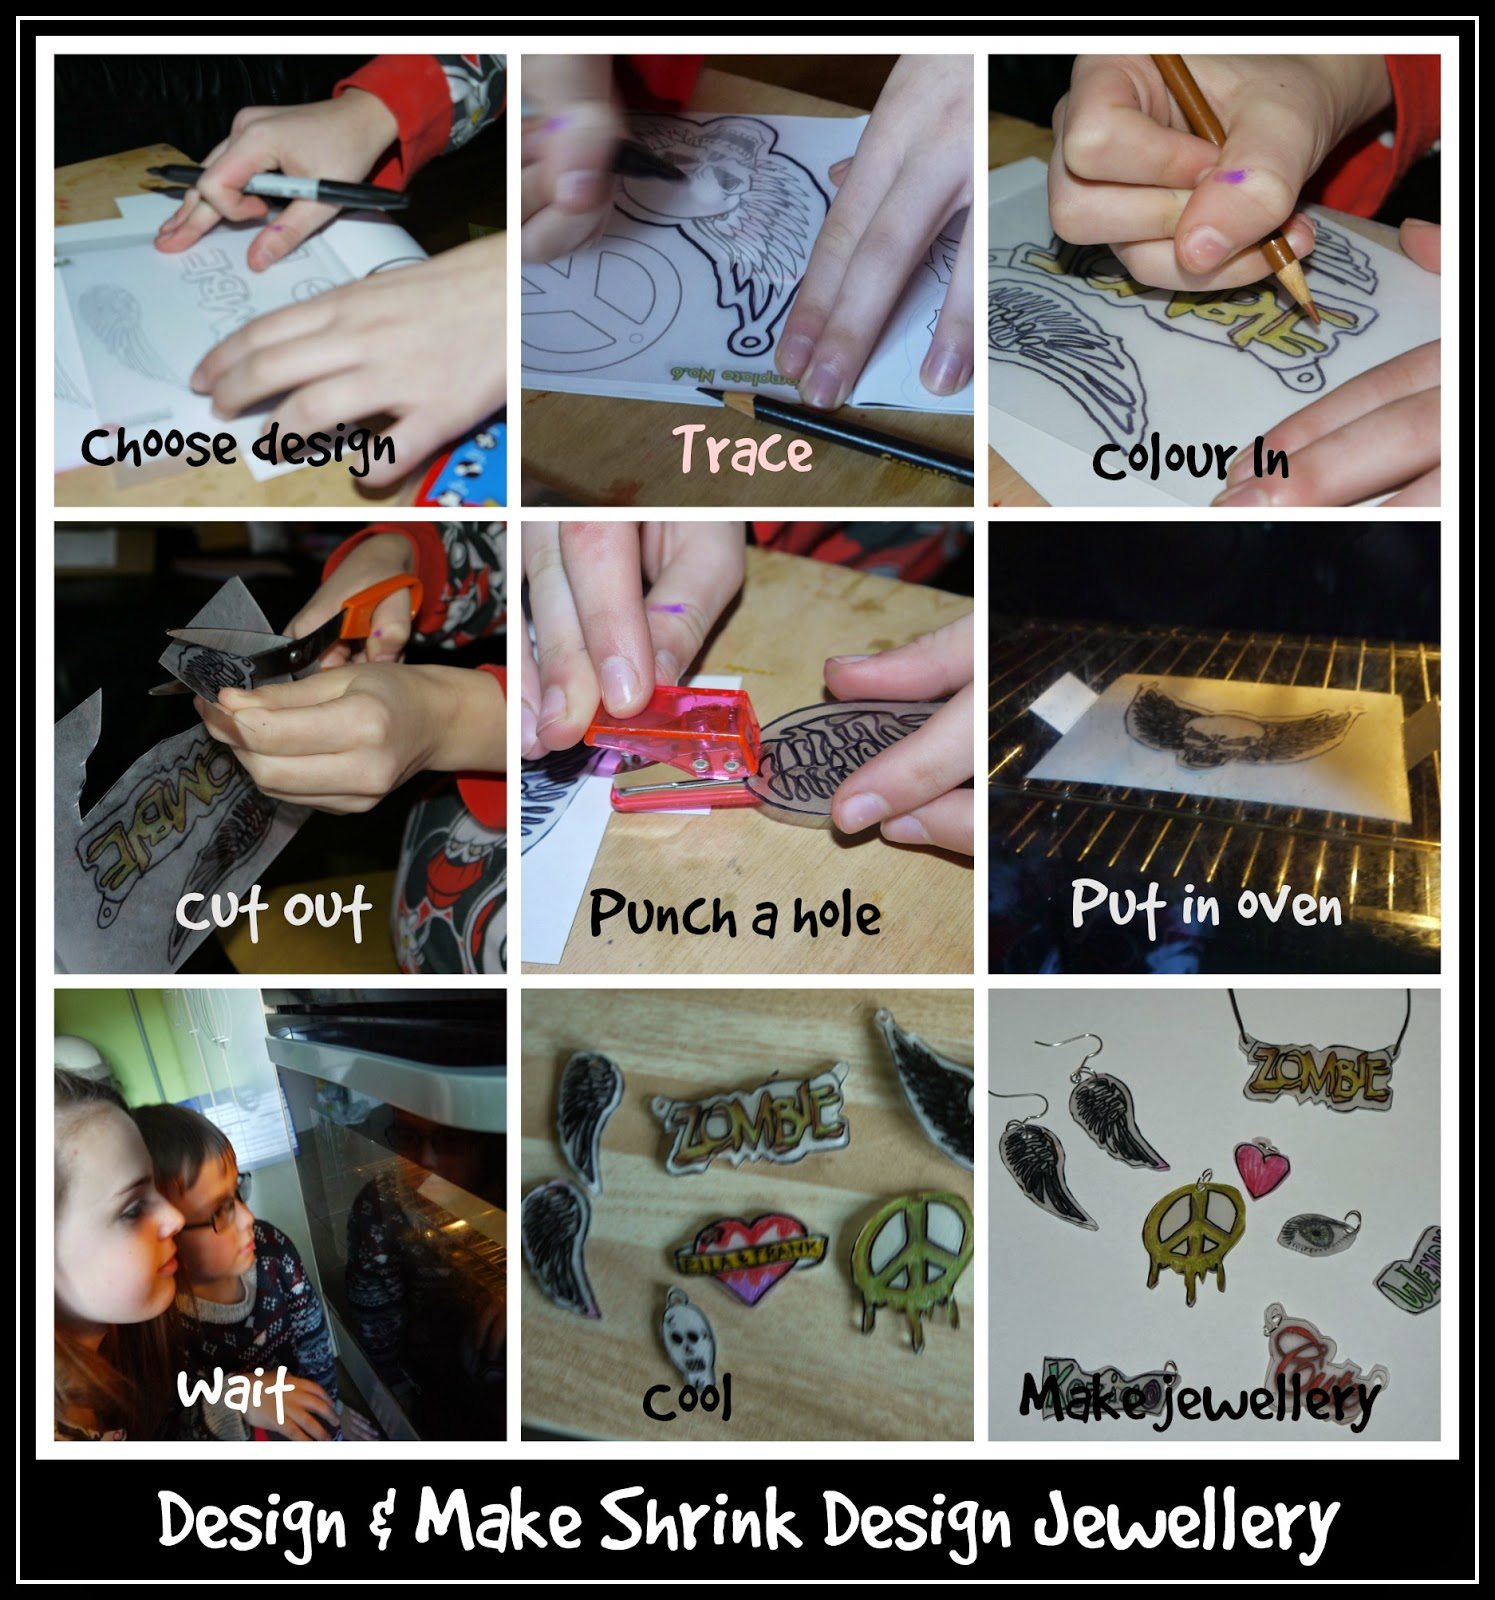 Shrink Design Jewellery